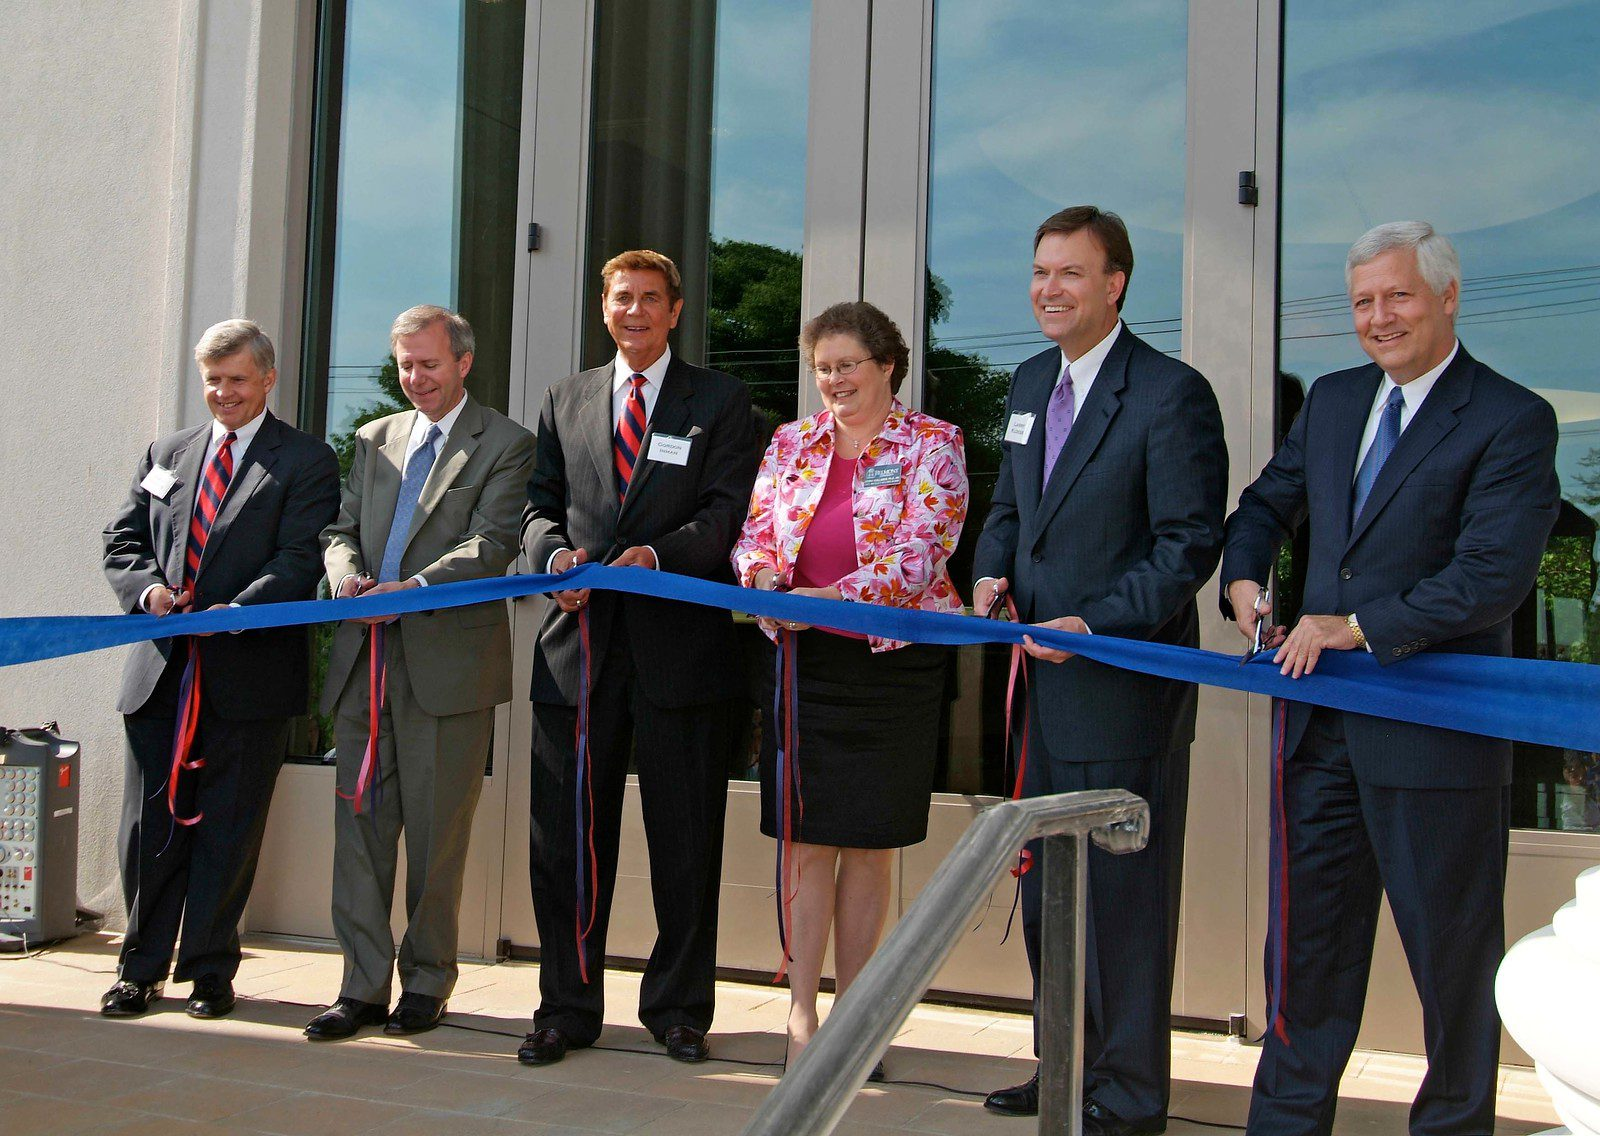 Dr. Fisher and group at ribbon cutting for Inman Center